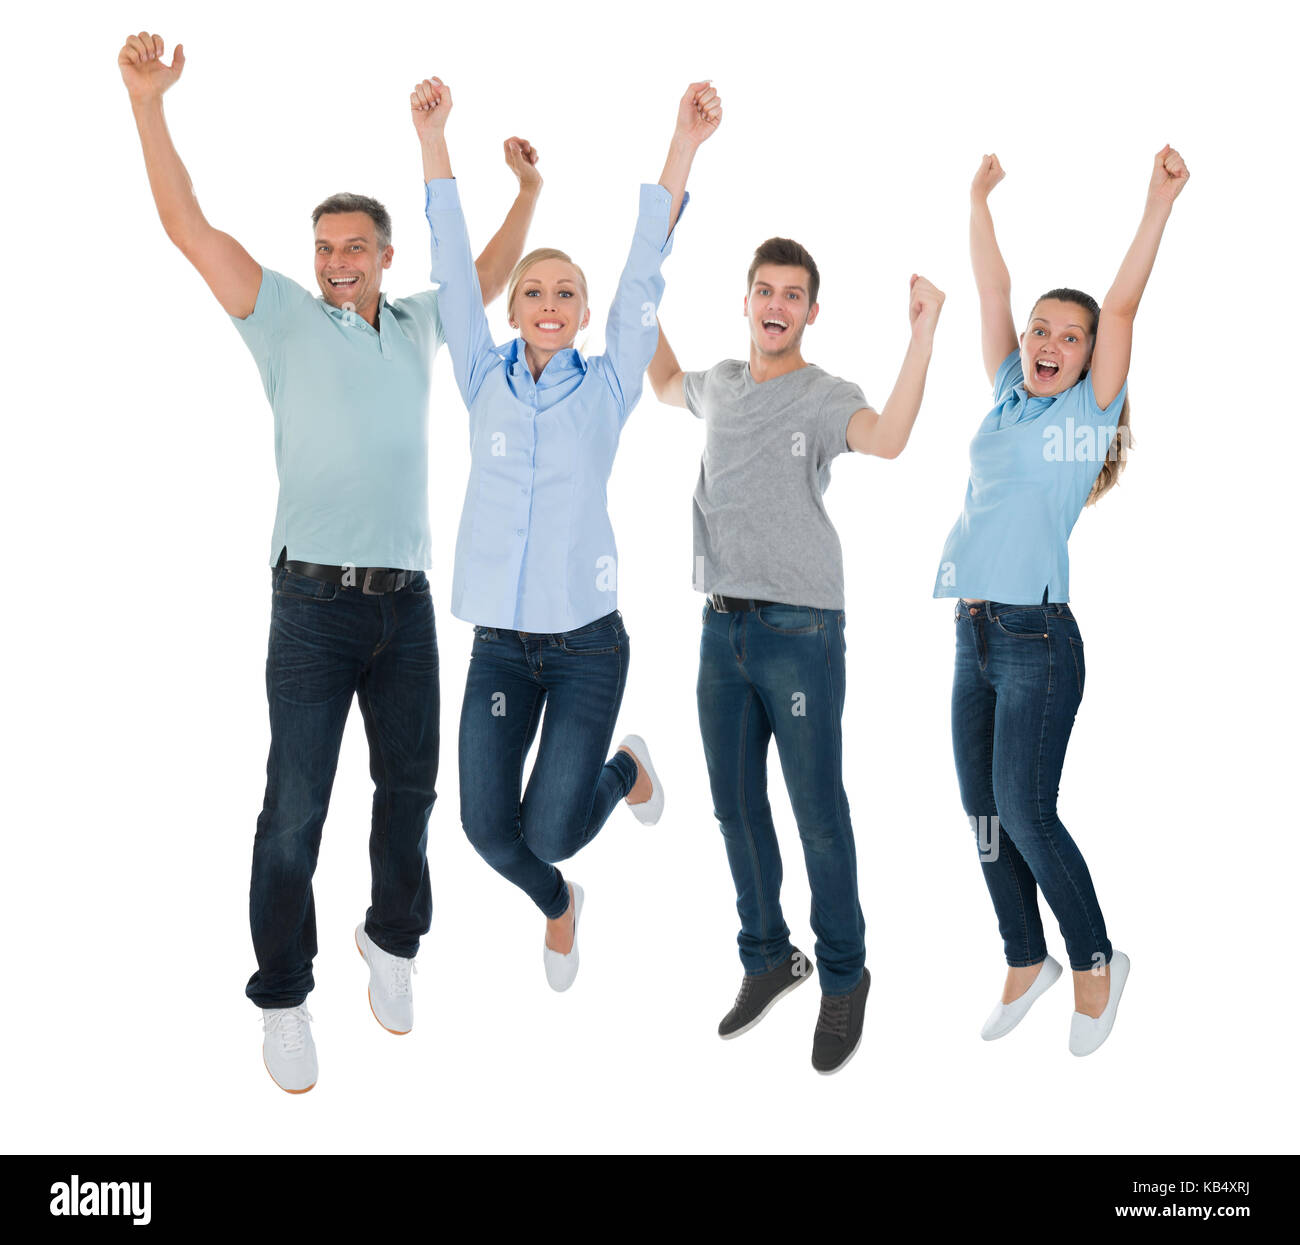 Group Of Excited People Jumping Over White Background - Stock Image